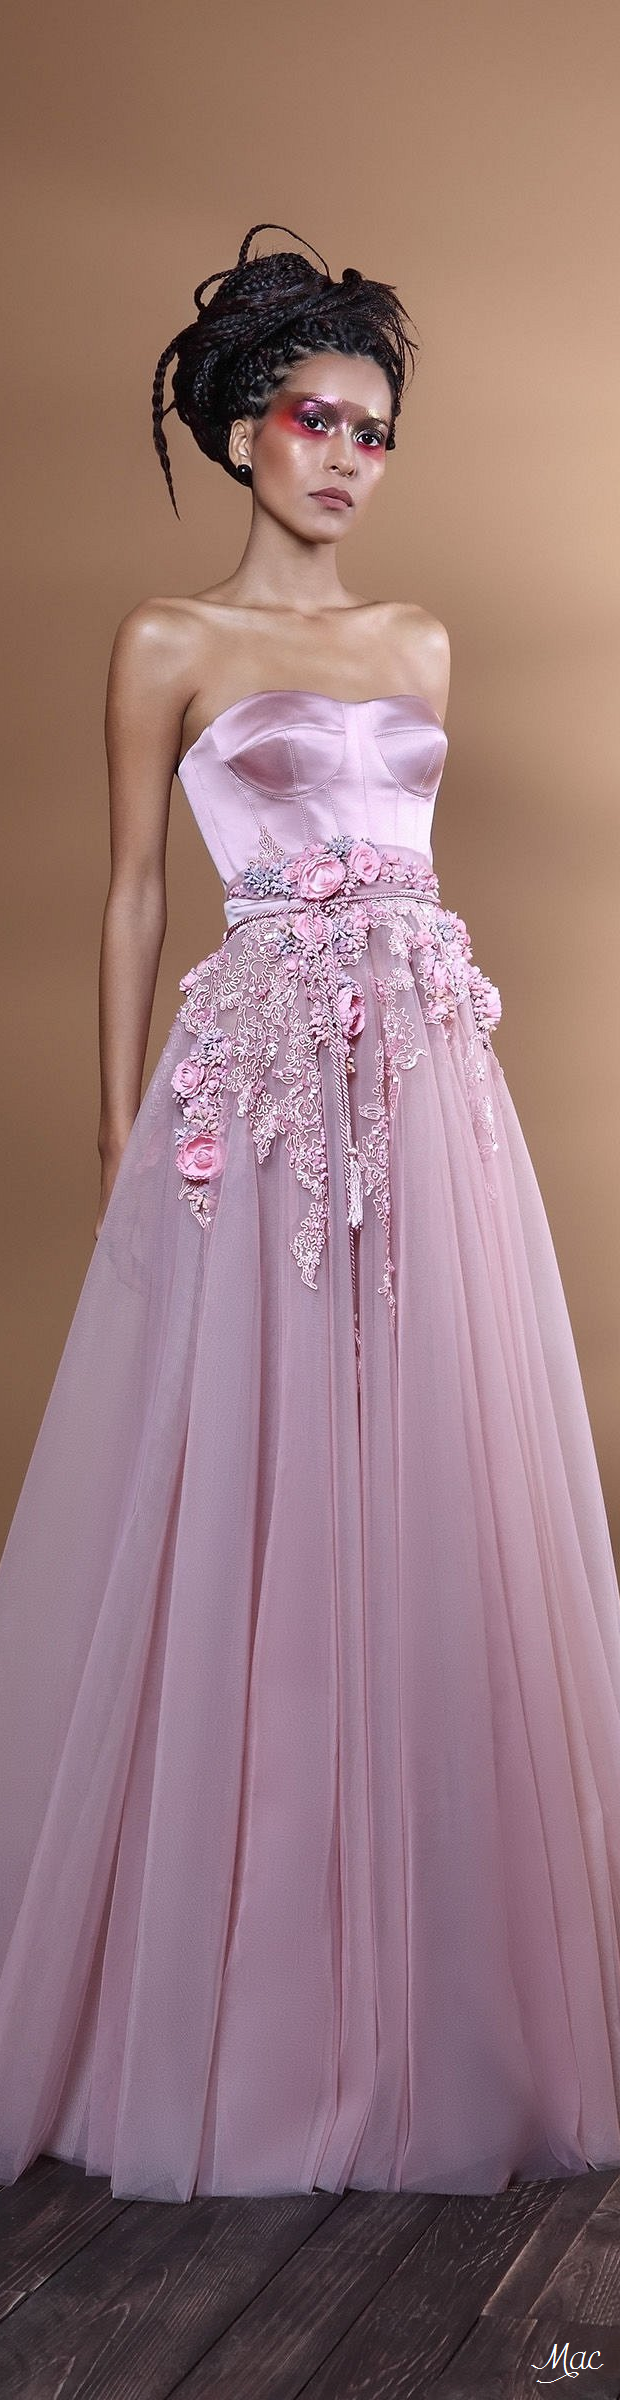 A different kind of wedding dress fantasy... light pink embroidered ...